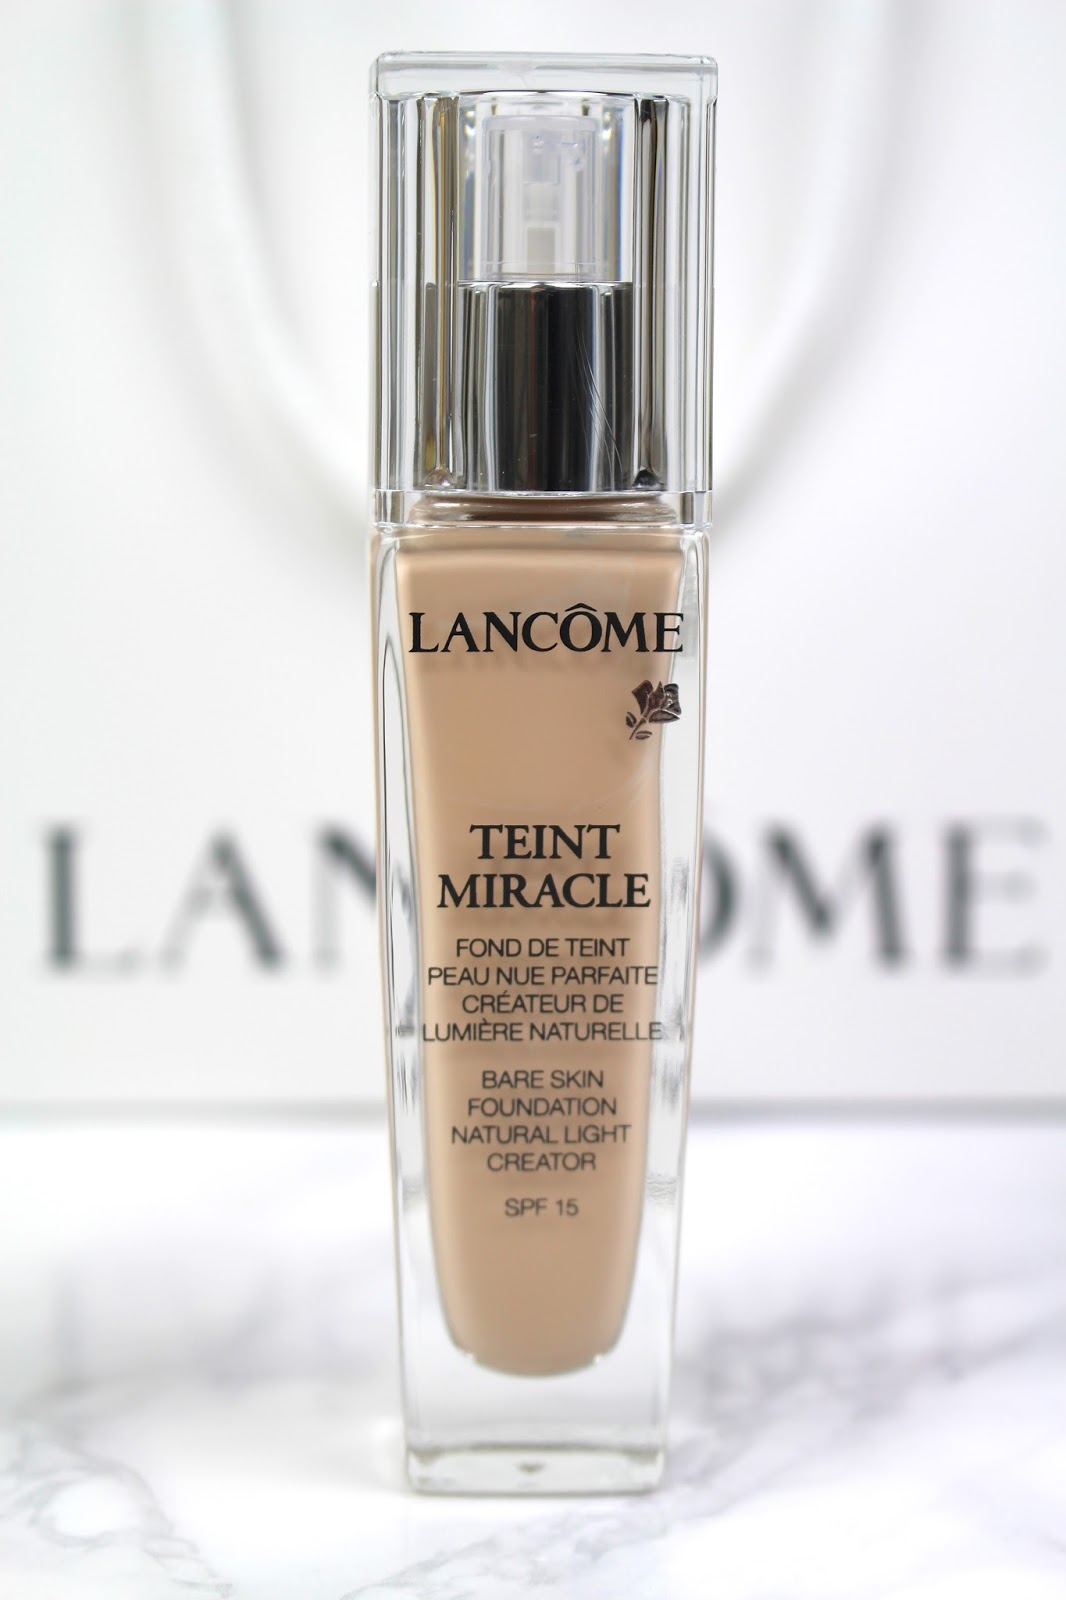 lancôme teint miracle foundation review